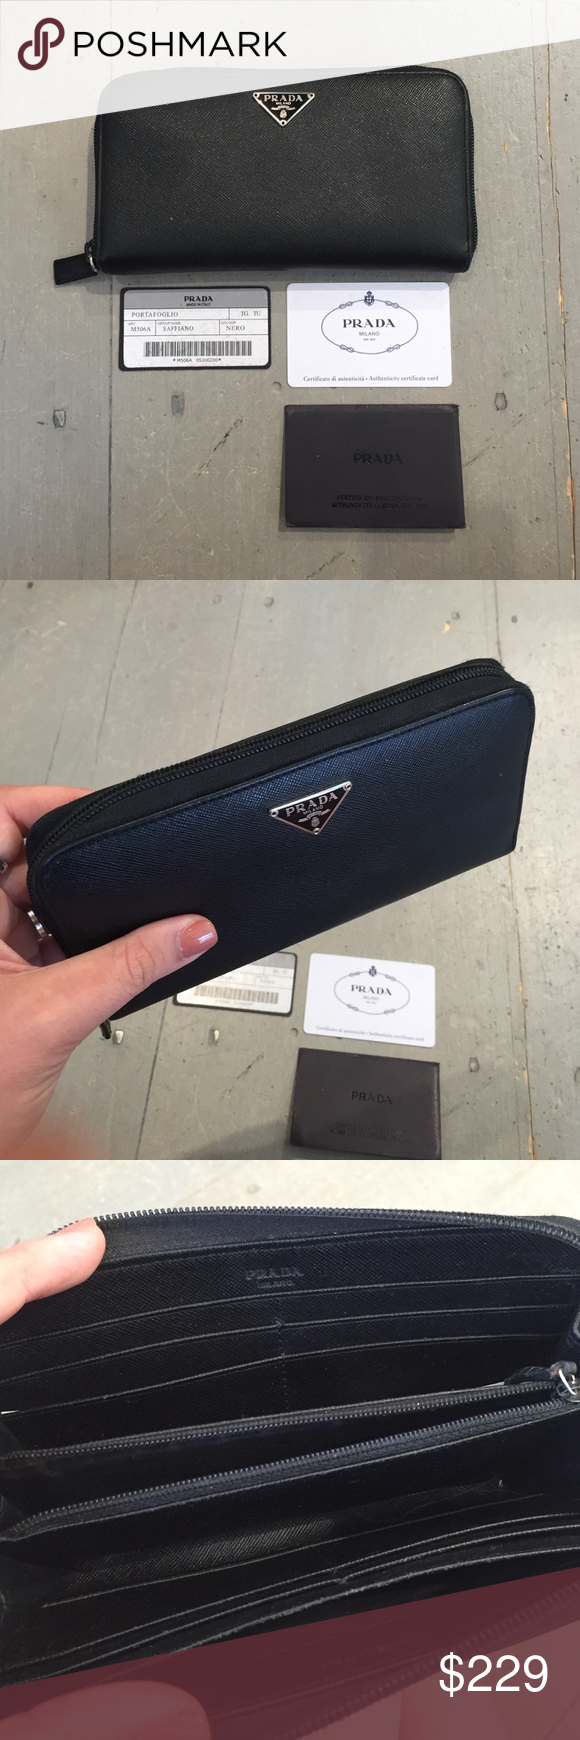 Prada Black Saffiano Leather Zip Around Wallet Continental size. In good condition. Comes with cards of authenticity. Prada Accessories